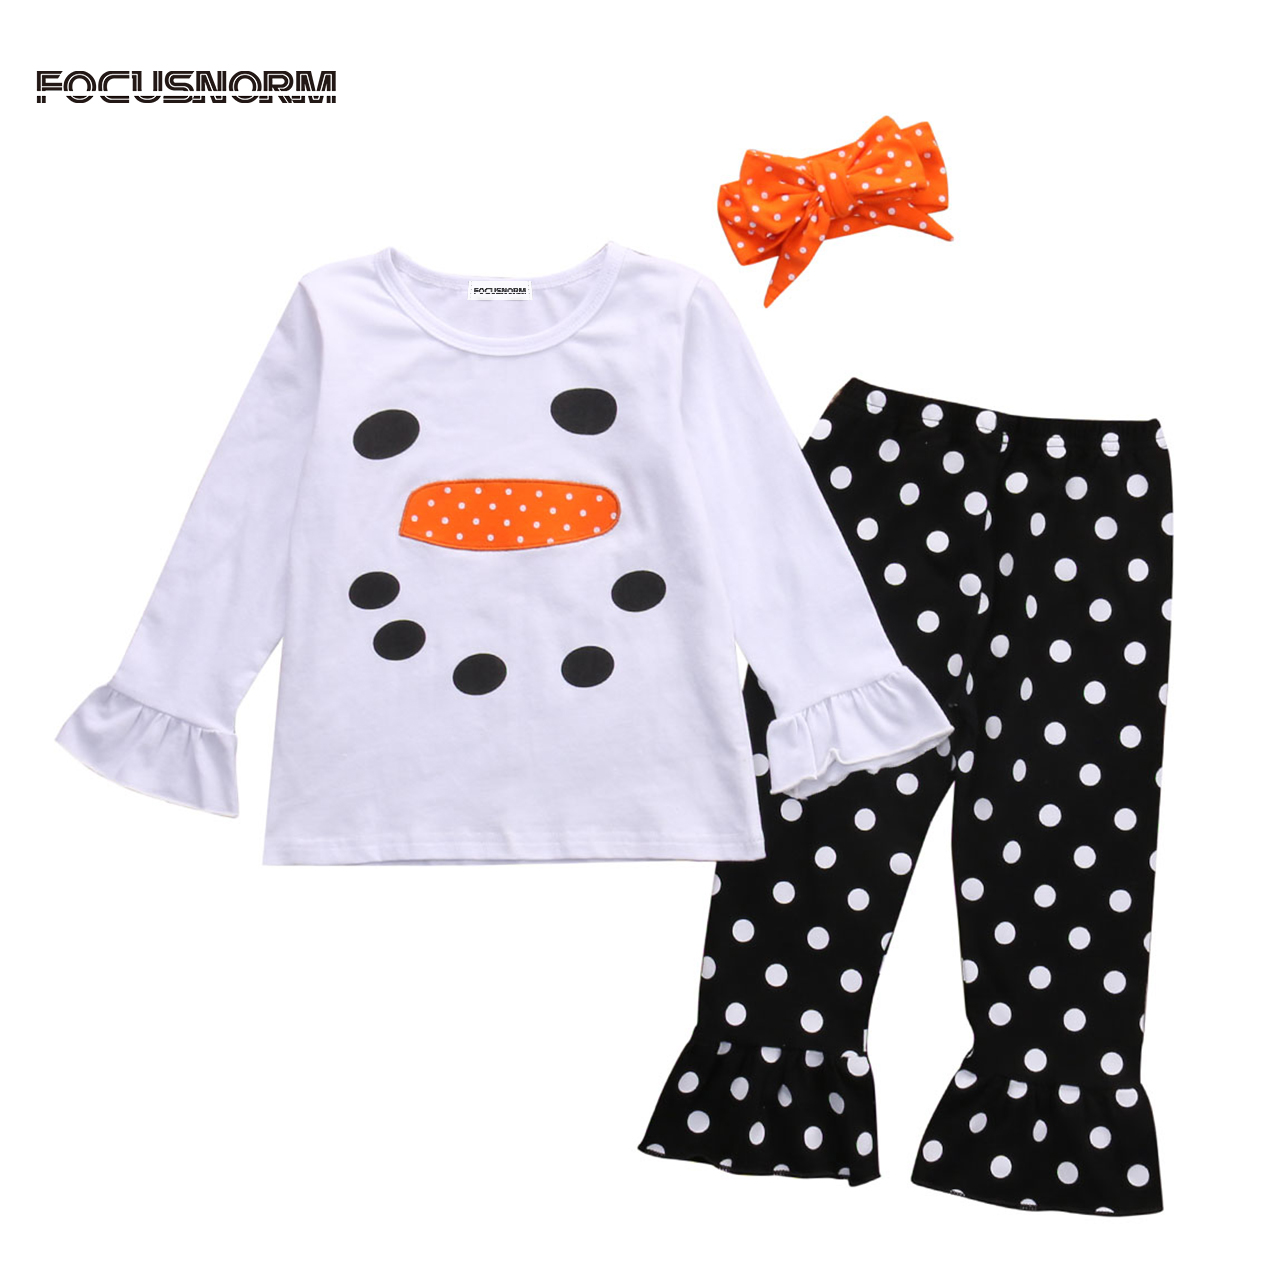 Toddler Kids Girls Clothes Cotton Long Sleeves T-Shirt Top+Pants +Headband Christmas Snowman Ruffle Polka Dot Outfits цена 2017